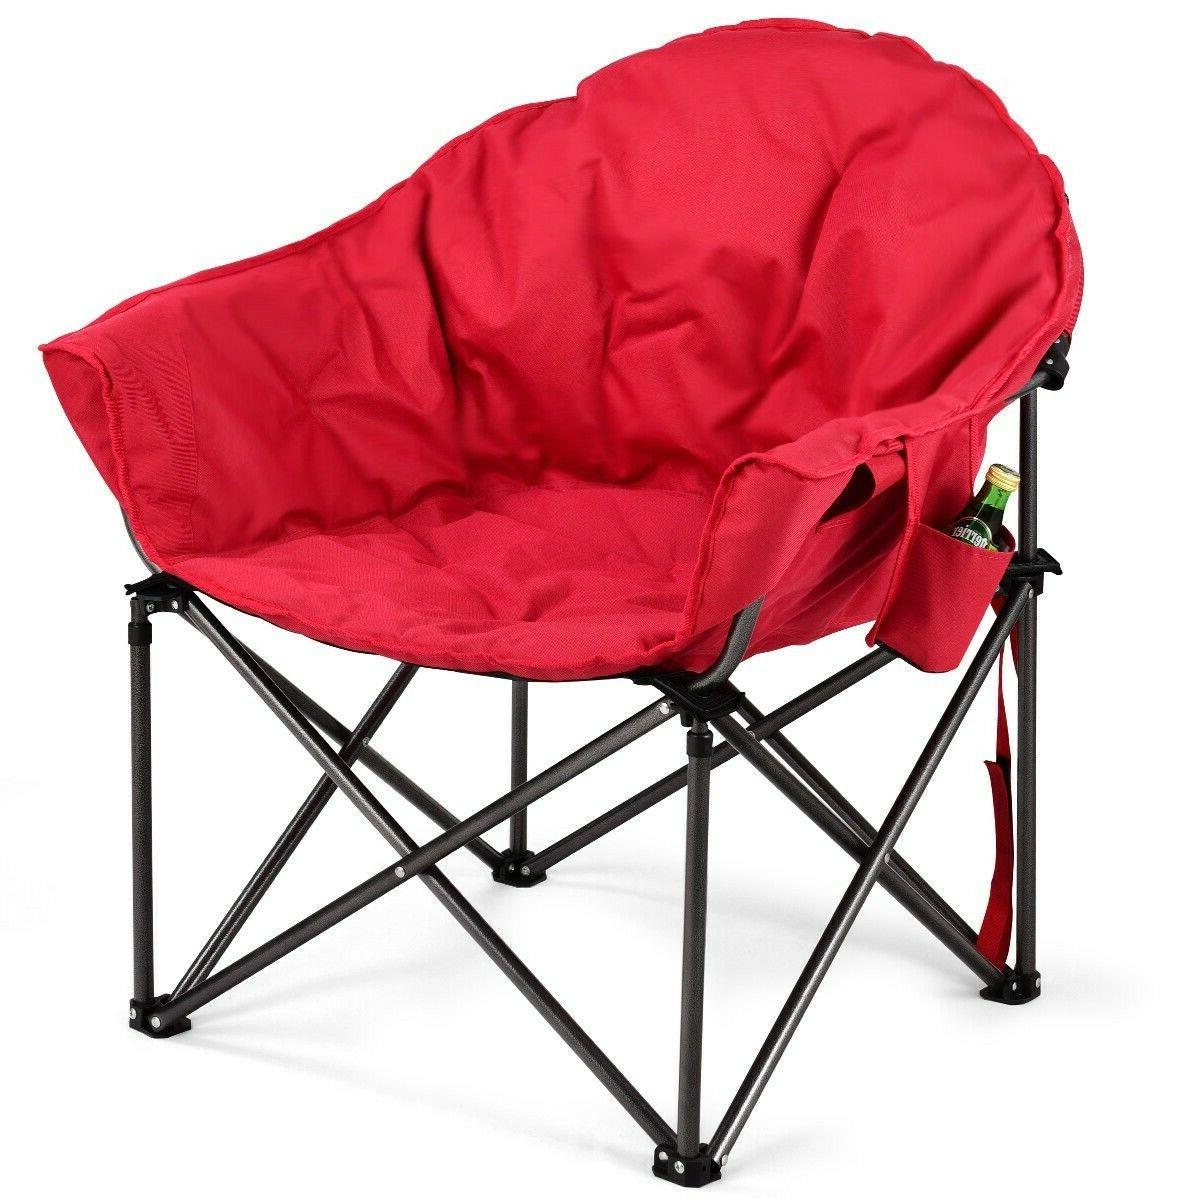 Oversized Moon Chair Camping Saucer Chairs Hiking